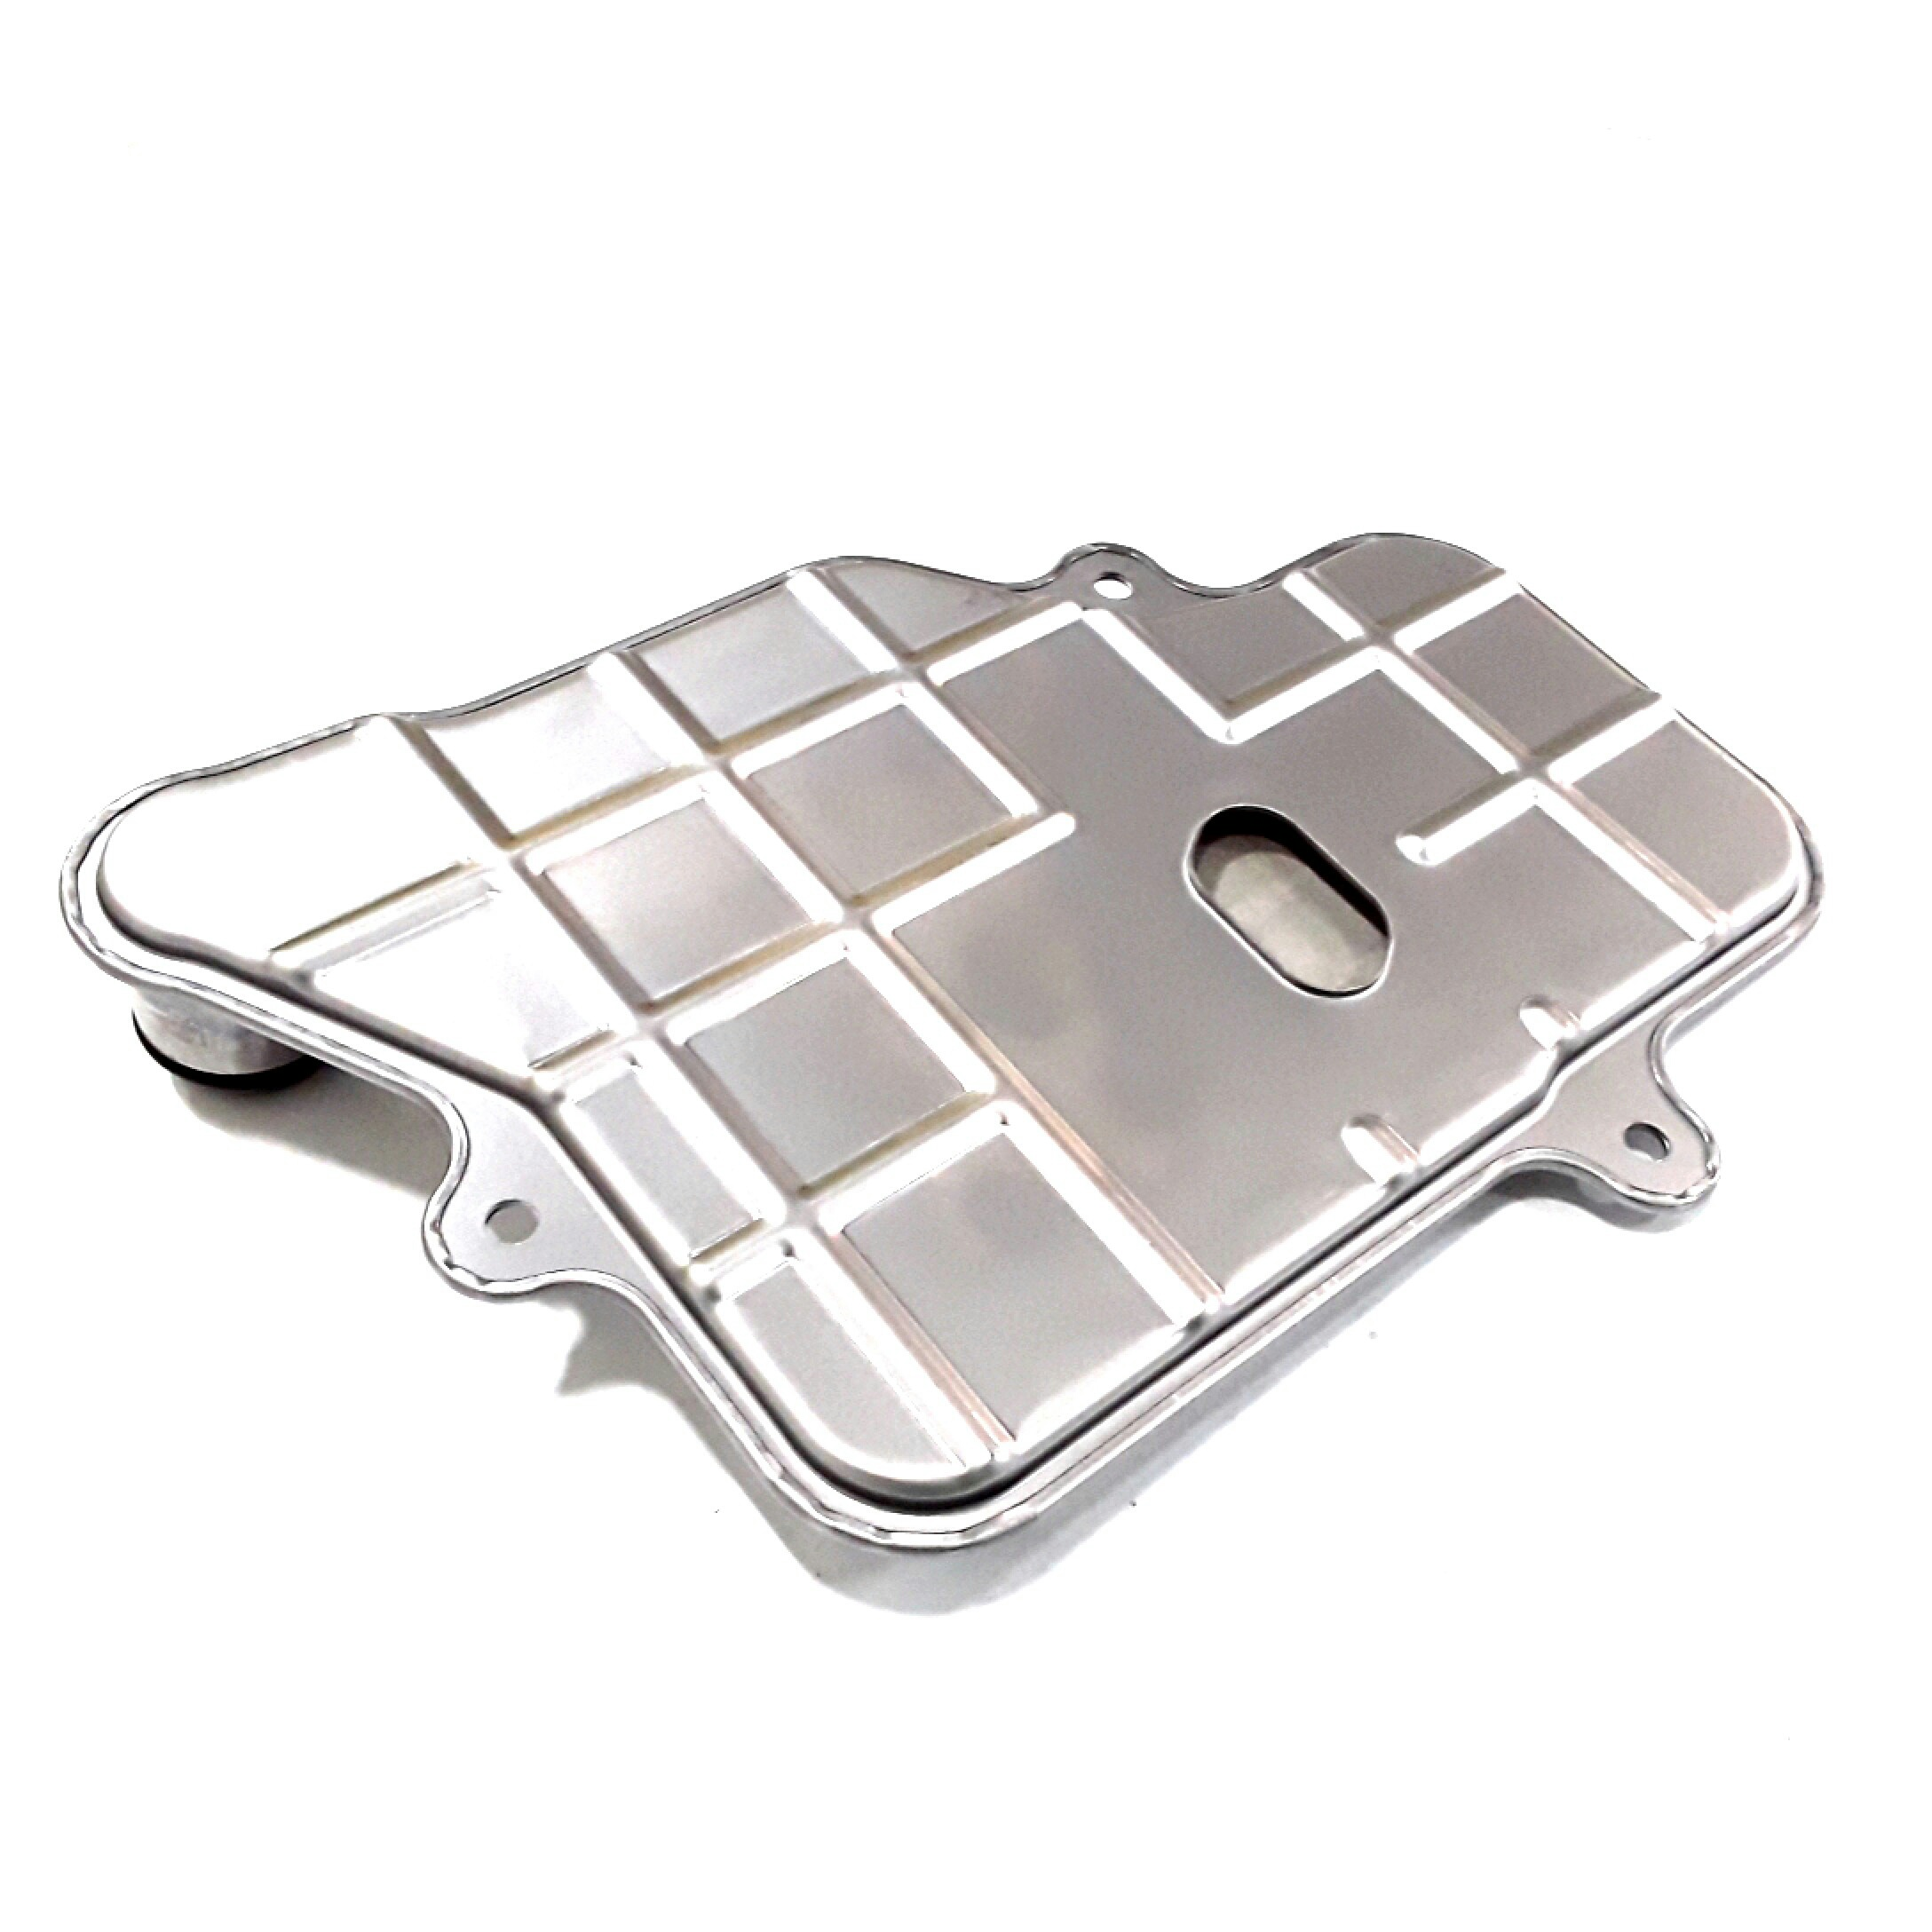 31728AA121 - Subaru Oil strainer assembly-transmission ...